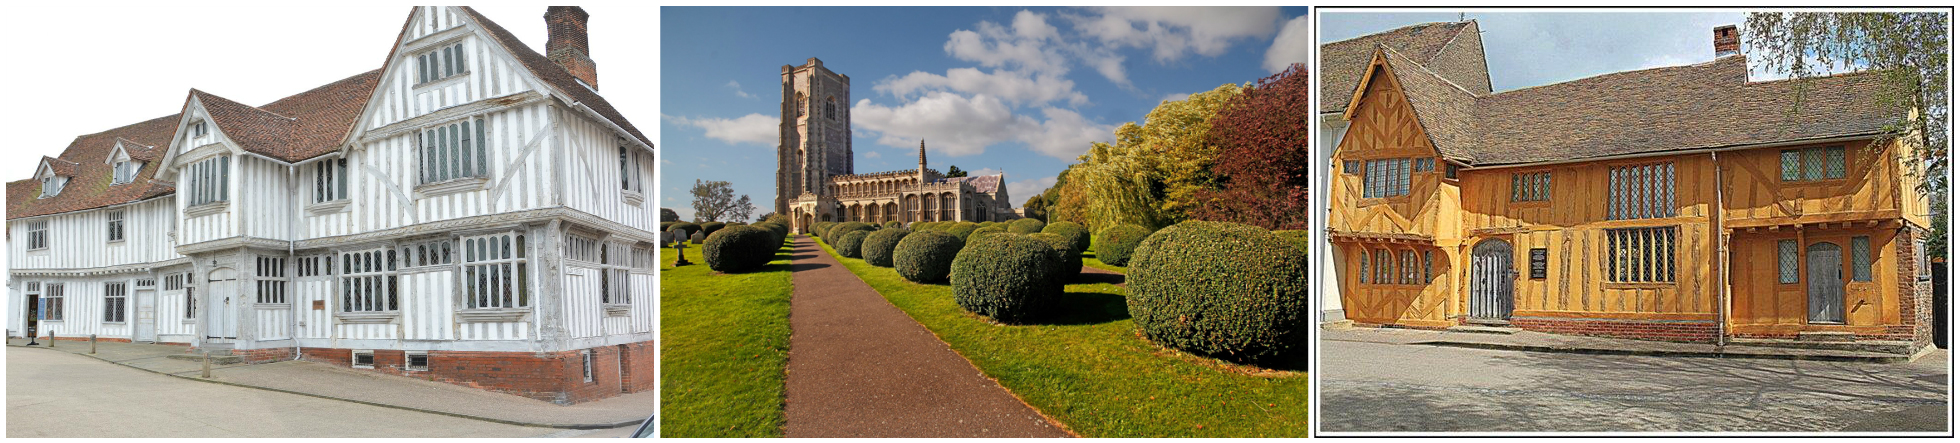 Explore Lavenham in Suffolk